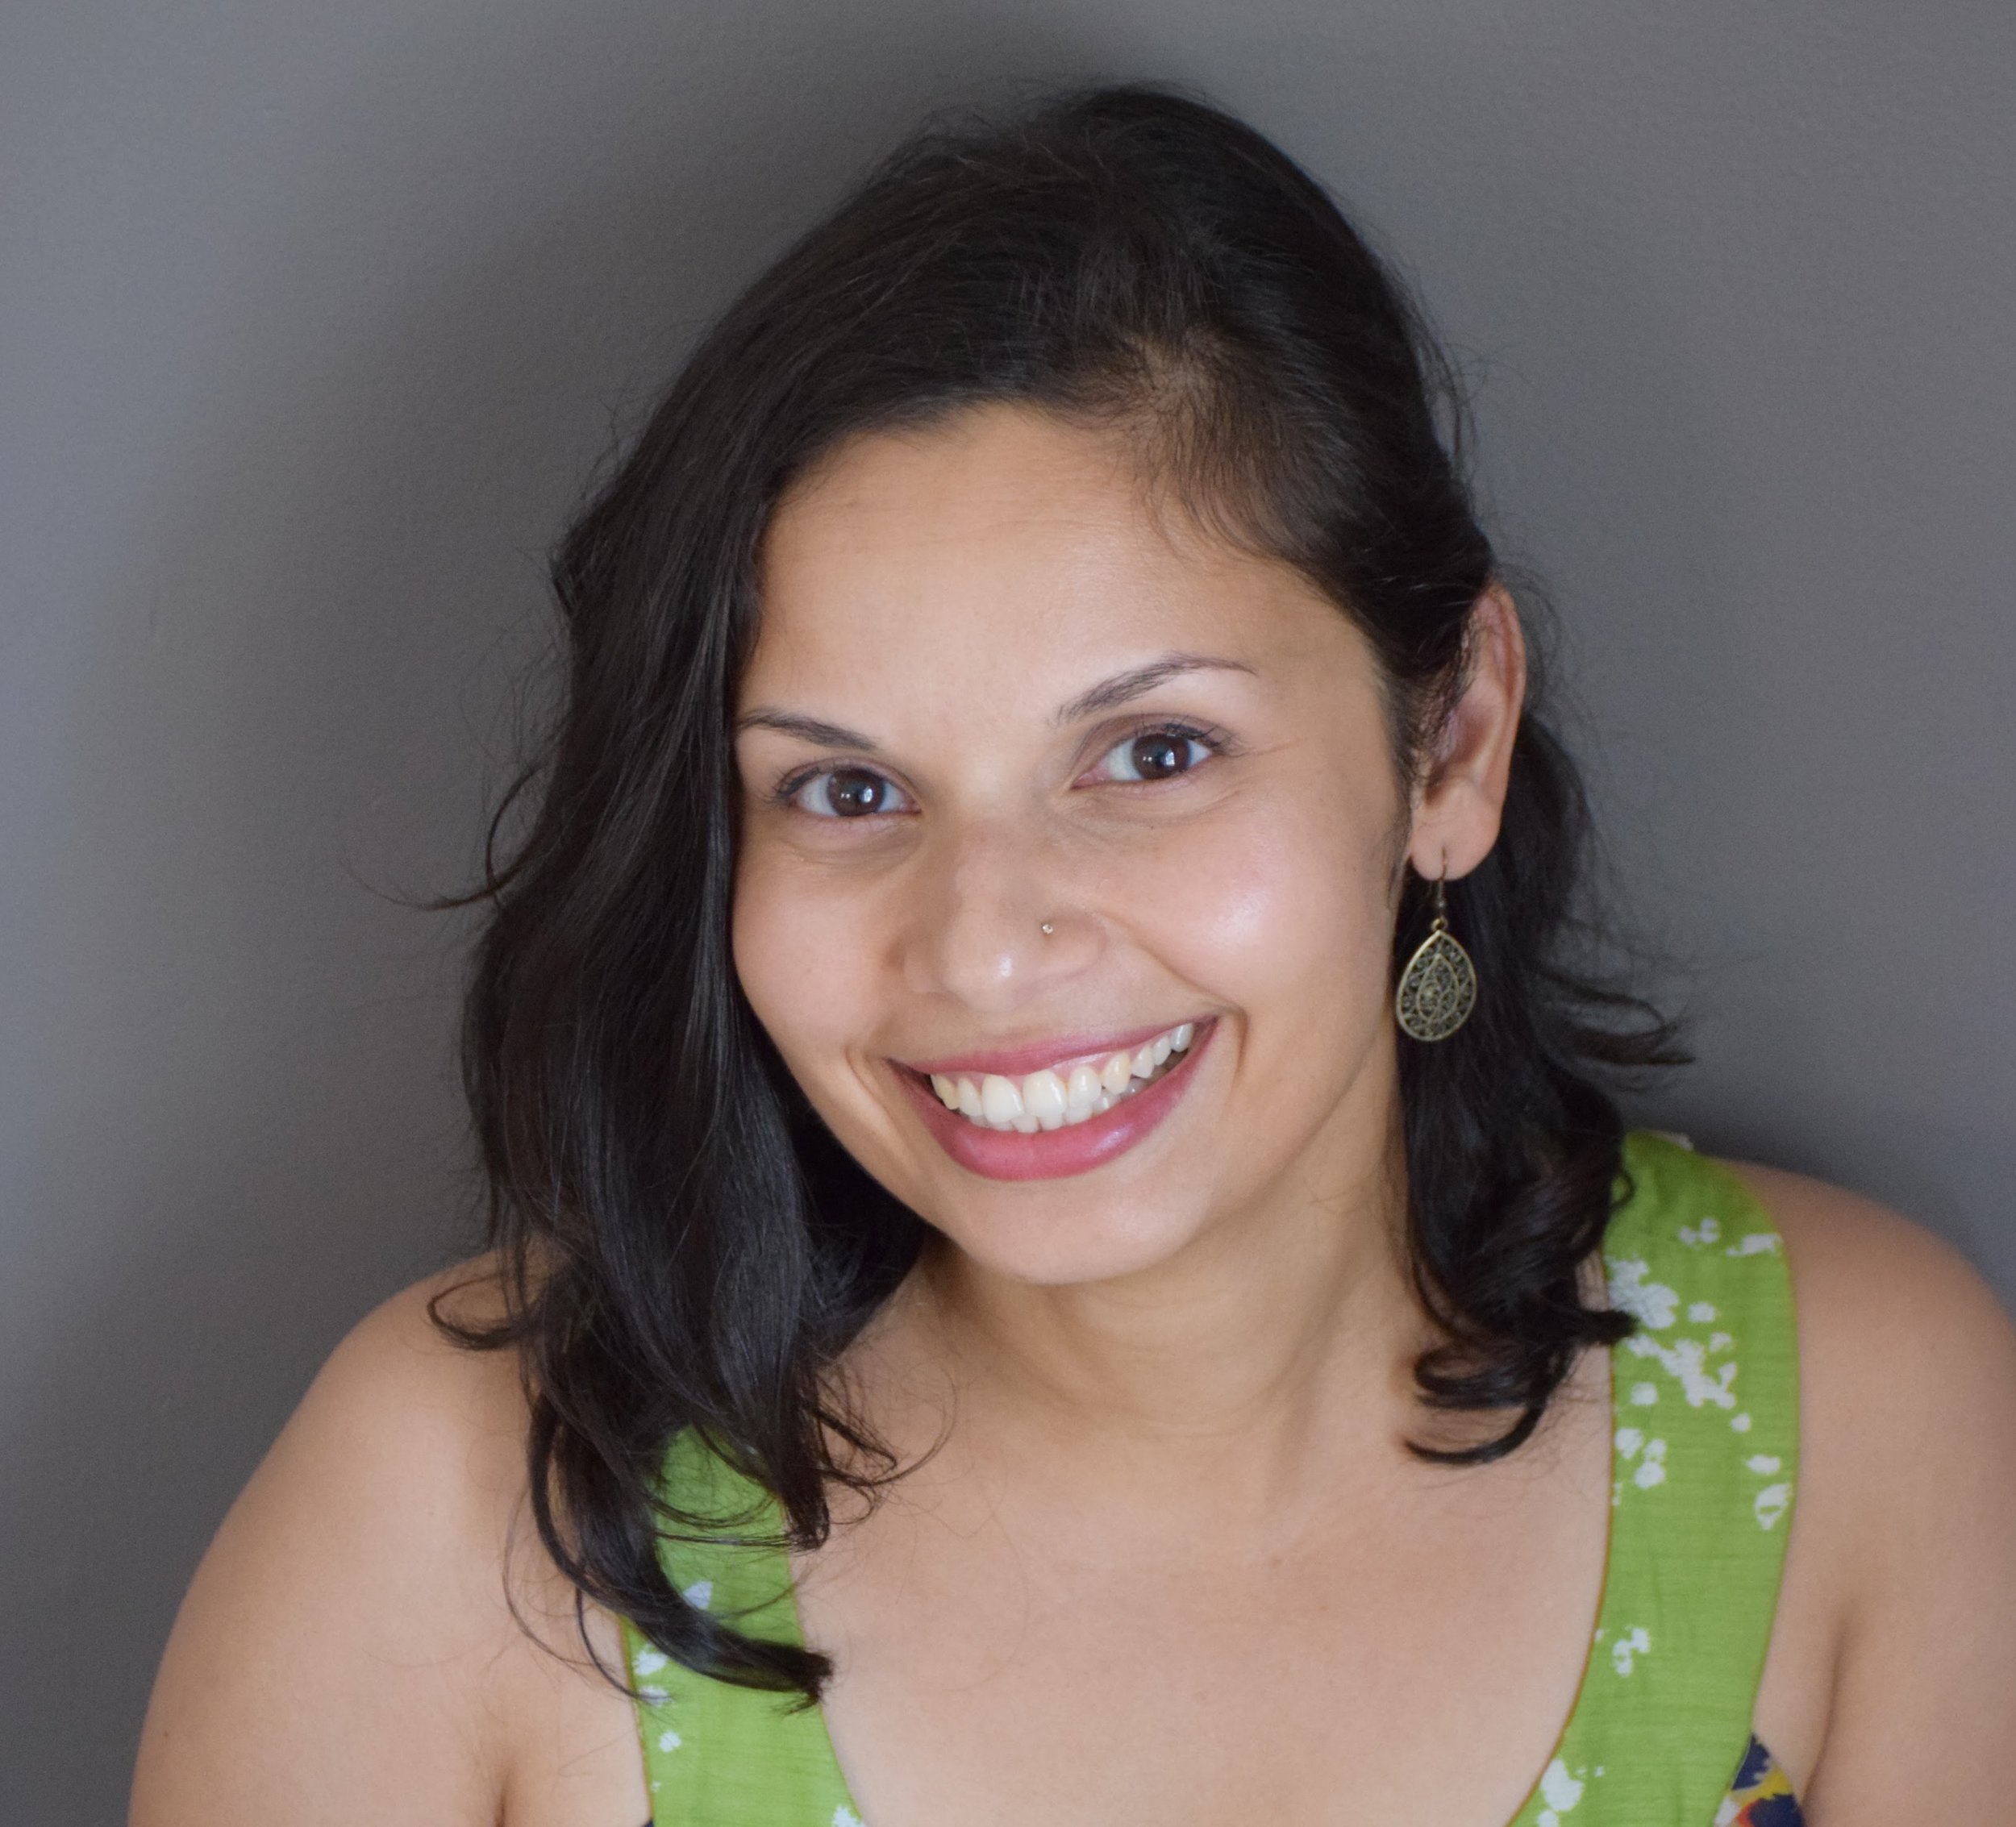 Janki Mody - Janki Mody is a pregnancy loss and women's infertility advocate. She is an educator, writer and the mother of two very energetic boys with long eyelashes. She is grateful to be provided with this opportunity to shine a light on an issue so many women face.